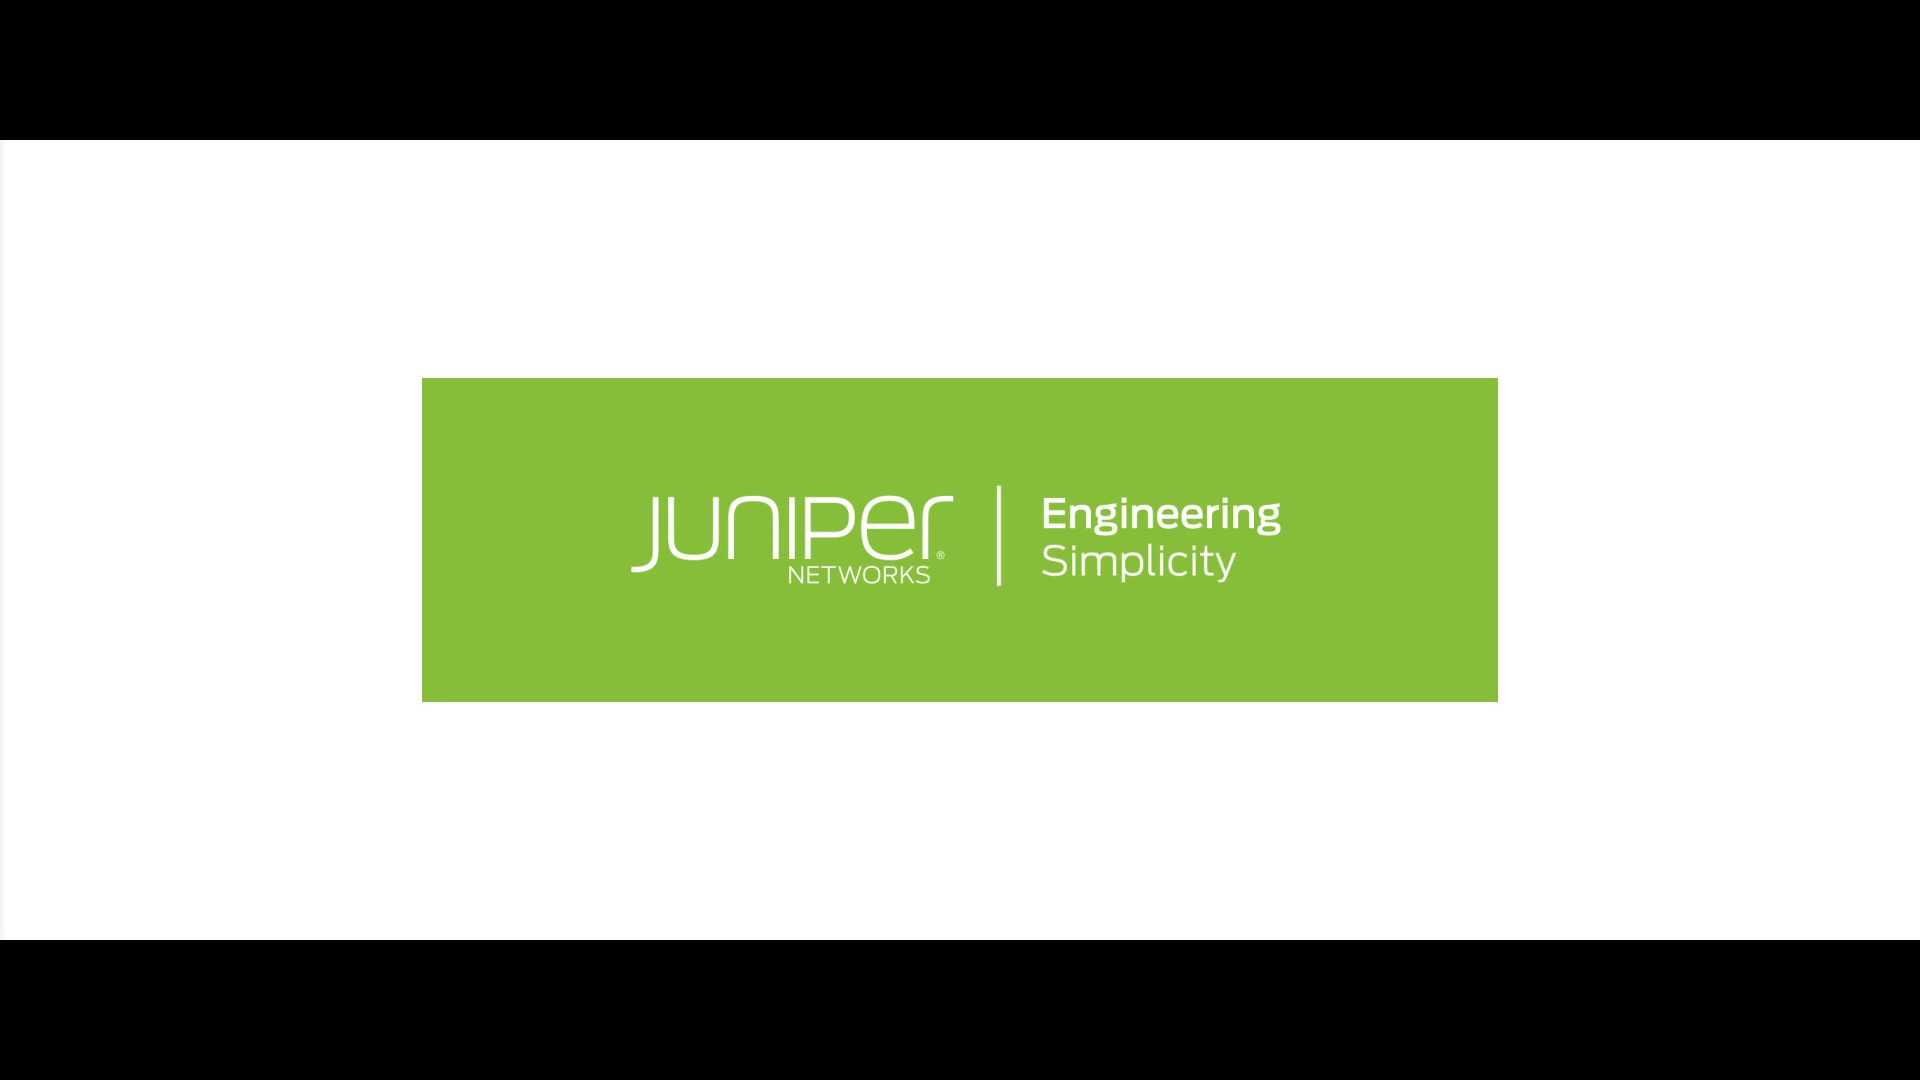 y2mate.com - JUNIPER NETWORKS _ ANTHEM_S3nYPeDz6Mk_1080p